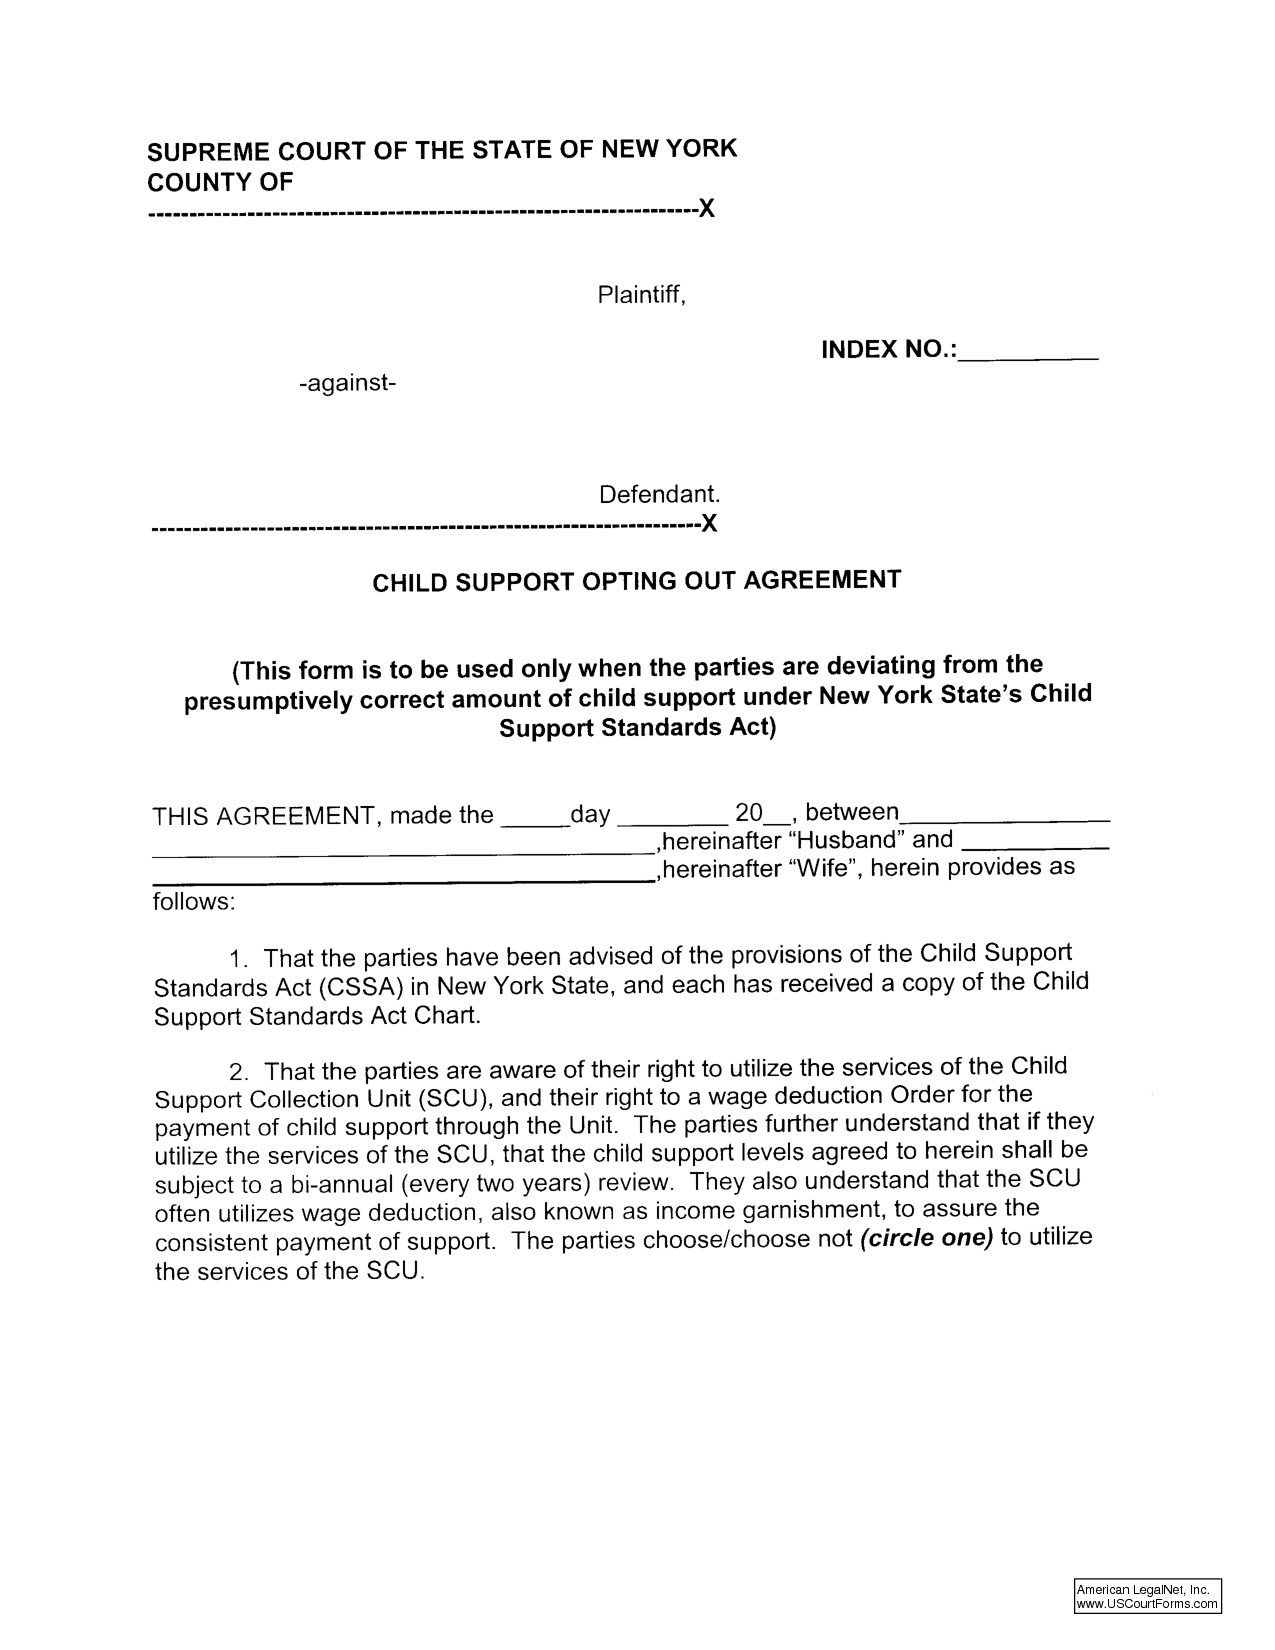 Child Maintenance Agreement Letter Template - How to Write A Letter to Child Support Gallery Letter format